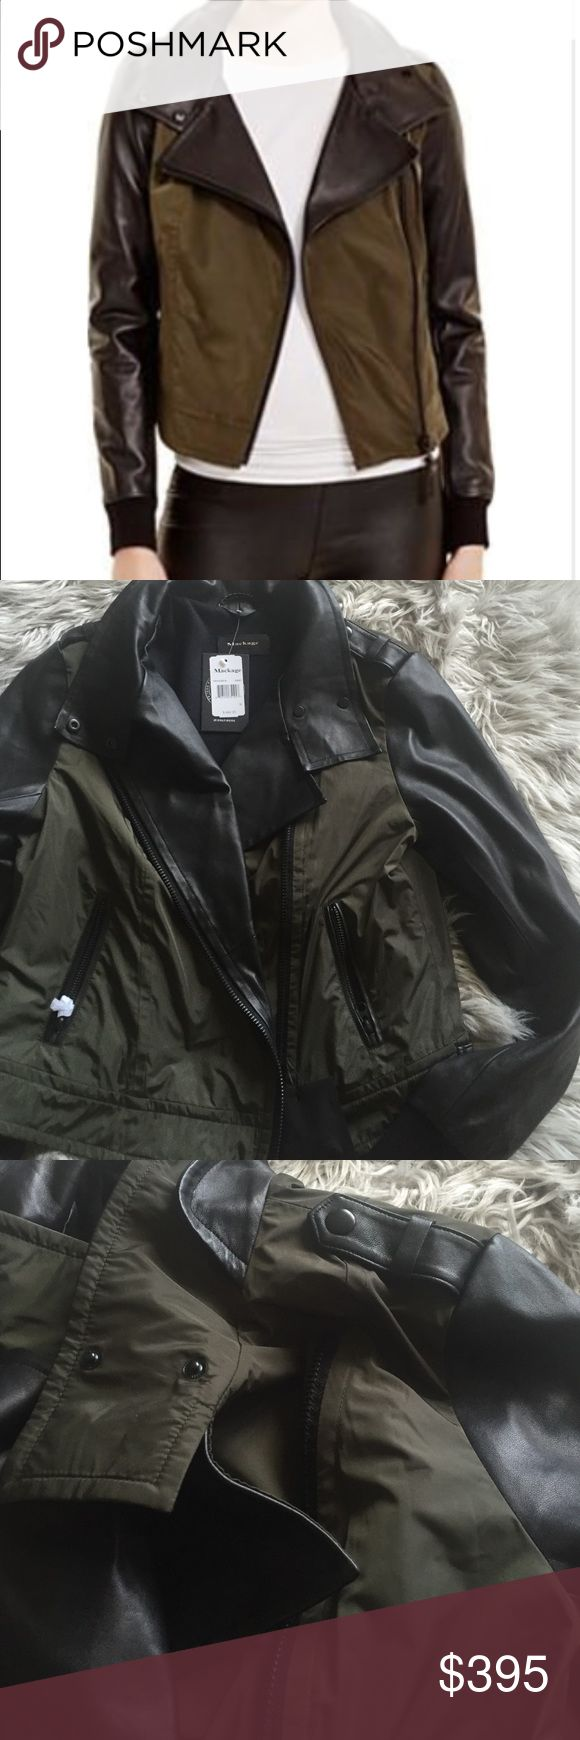 Mackage jacket Brand new Army green & leather Mackage jacket Mackage Jackets & Coats